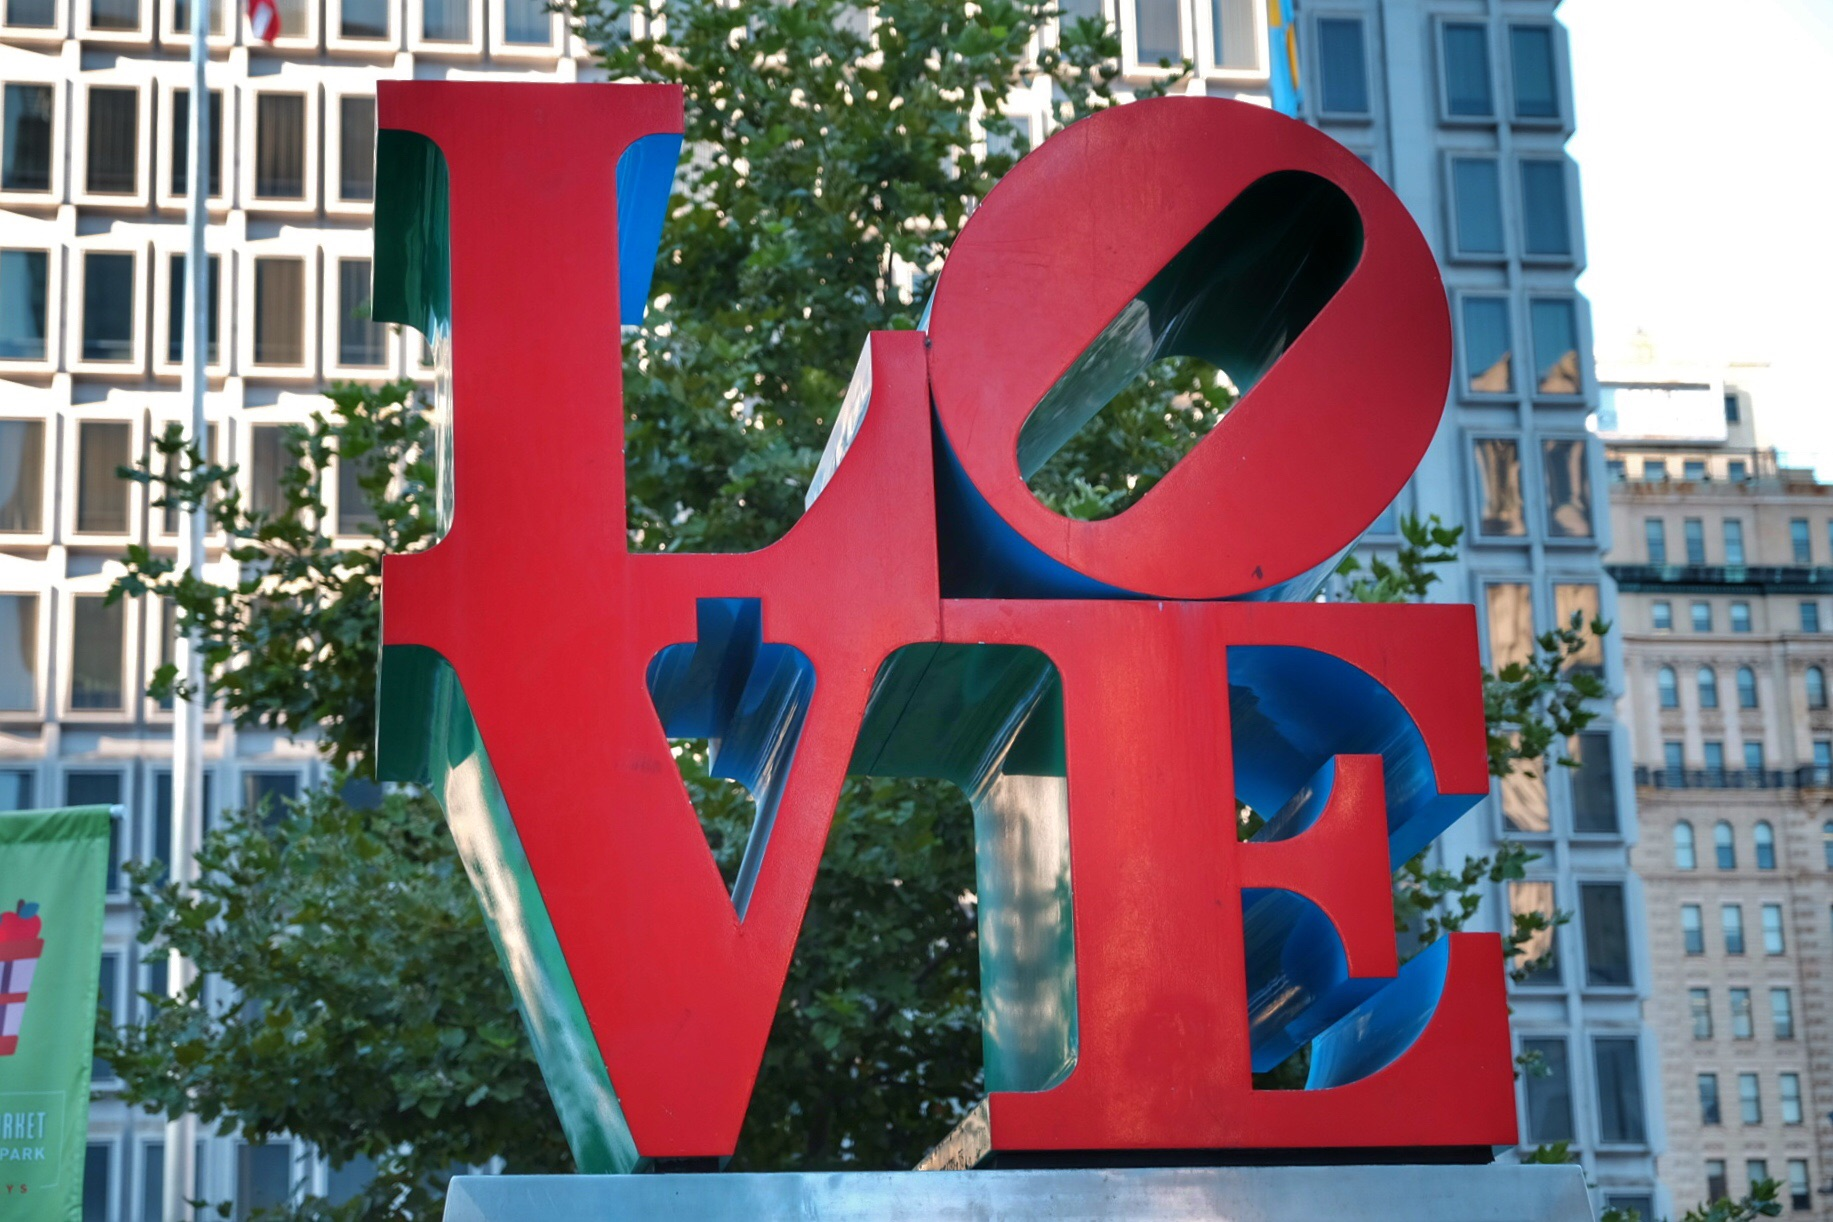 LOVE, Dilworth Park.